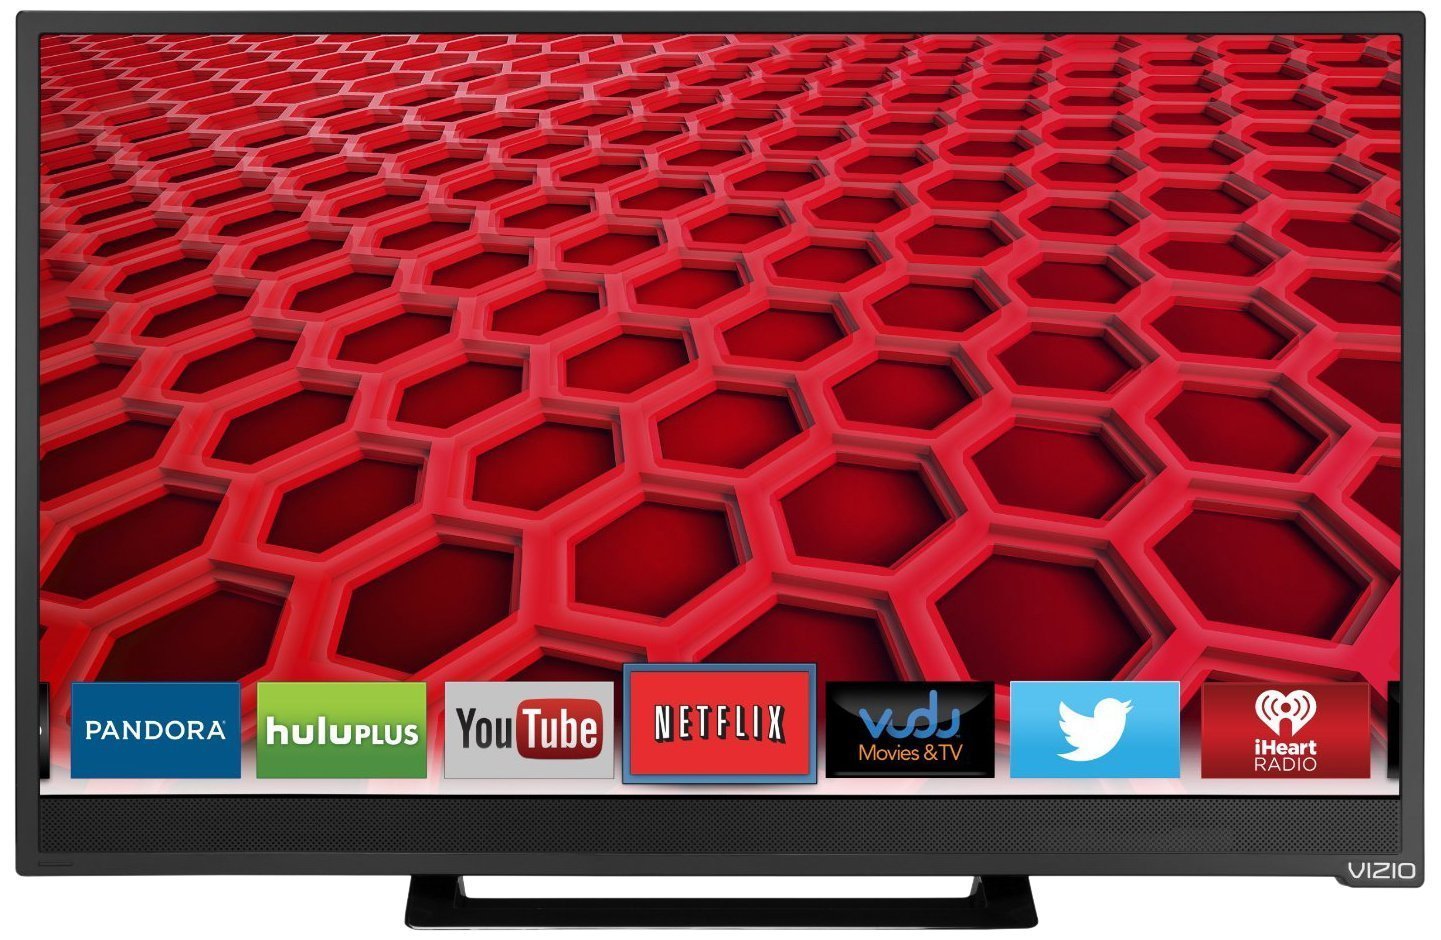 VIZIO E241I-B1 24-Inch Smart LED HDTV Review